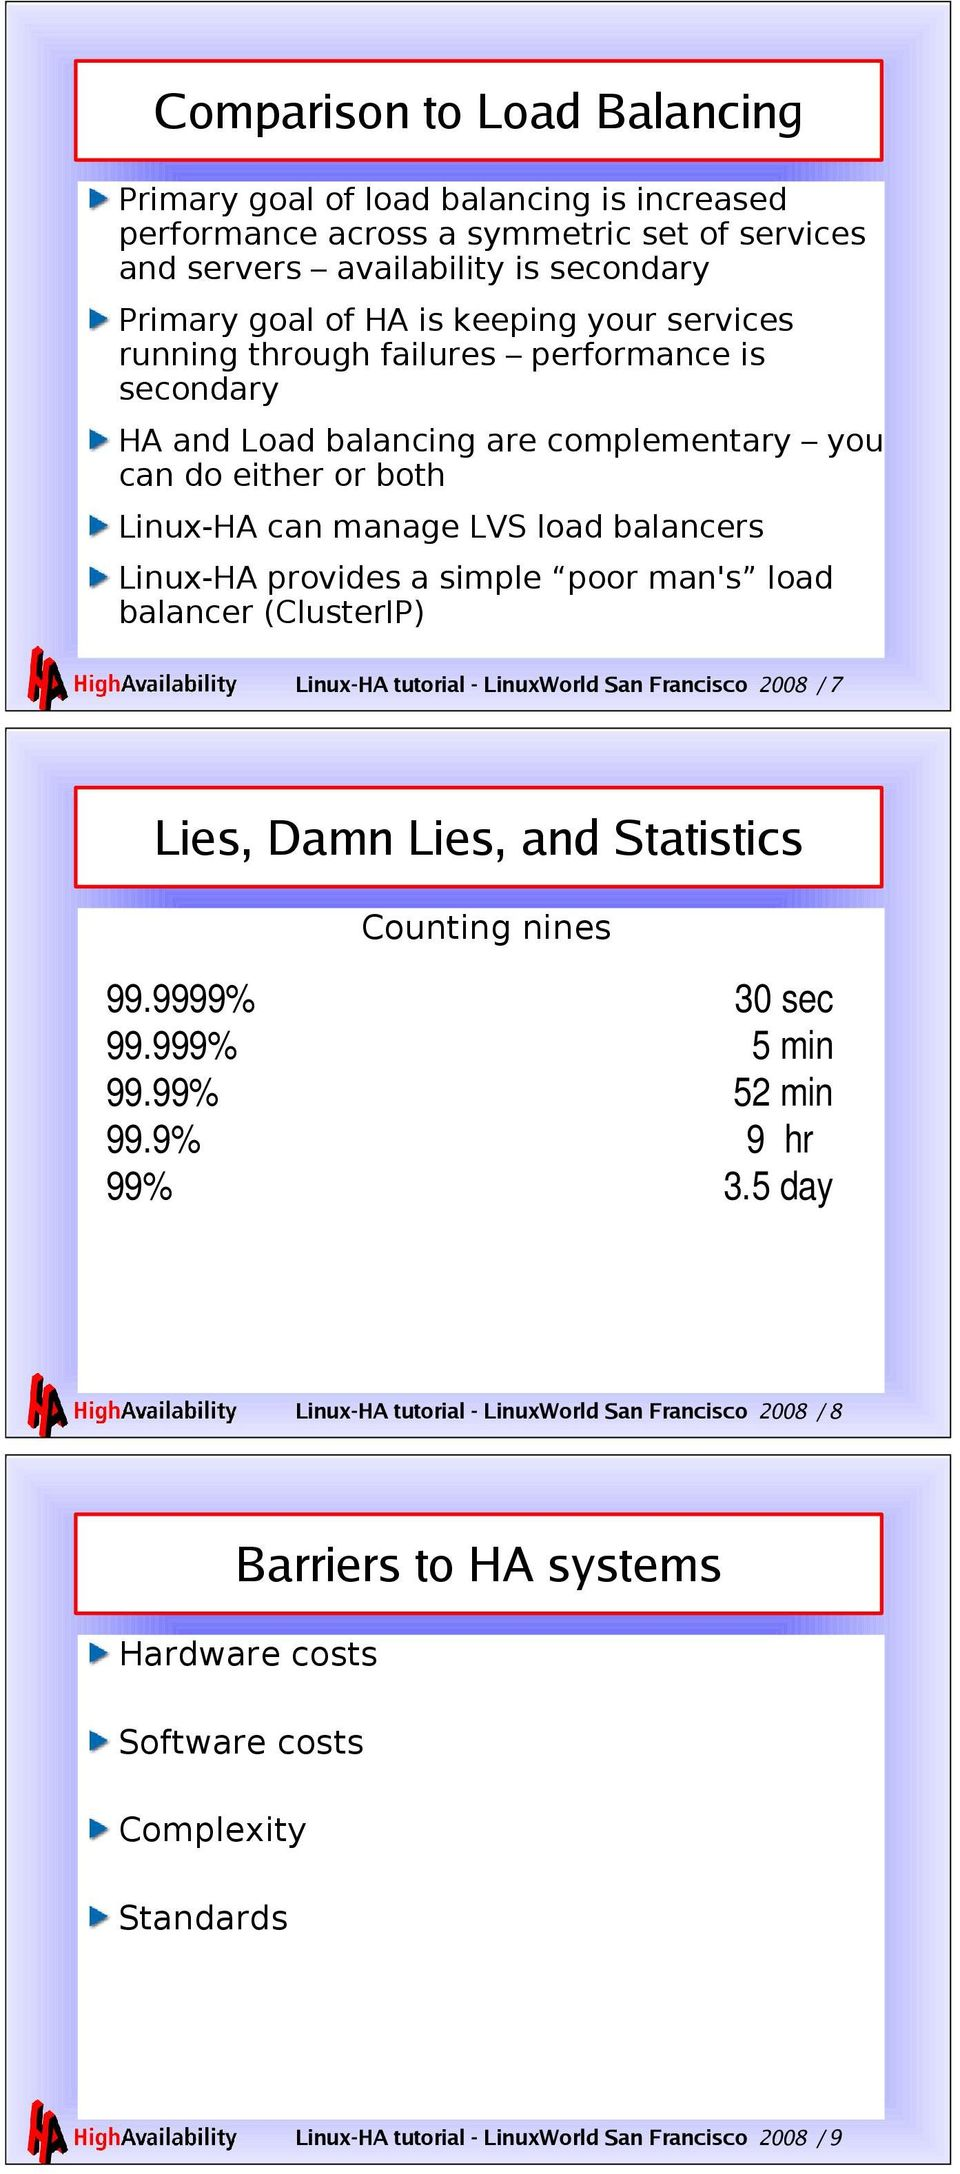 poor man's load balancer (ClusterIP) Linux-HA tutorial - LinuxWorld San Francisco 2008 / 7 Lies, Damn Lies, and Statistics Counting nines 99.9999% 99.999% 99.99% 99.9% 99% 30 sec 5 min 52 min 9 hr 3.